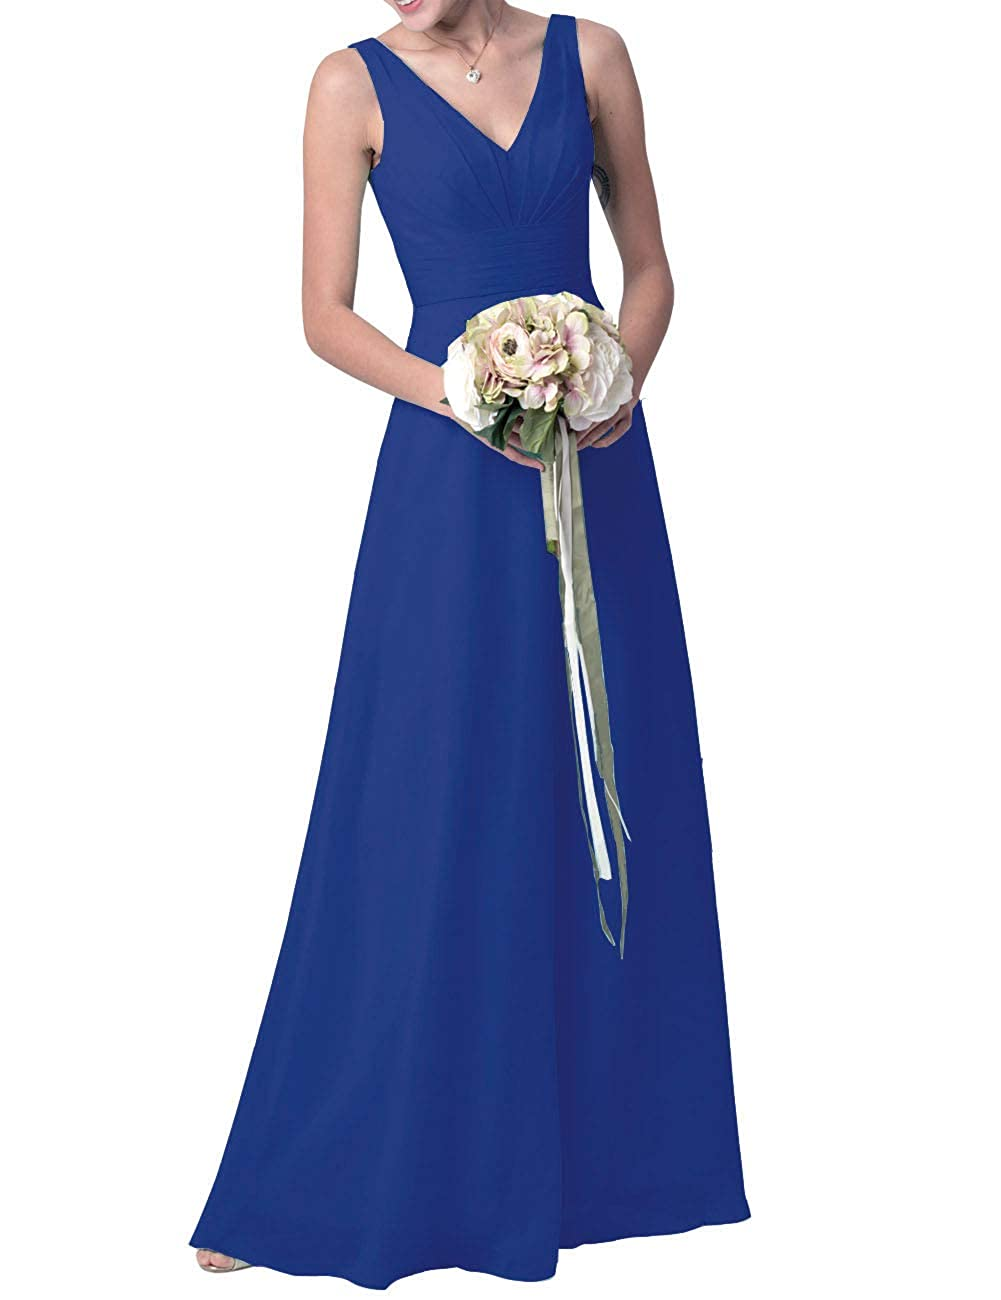 Royal bluee Uther Long Bridesmaid Maxi Dresses Women V Neck Formal Evening Party Prom Gown